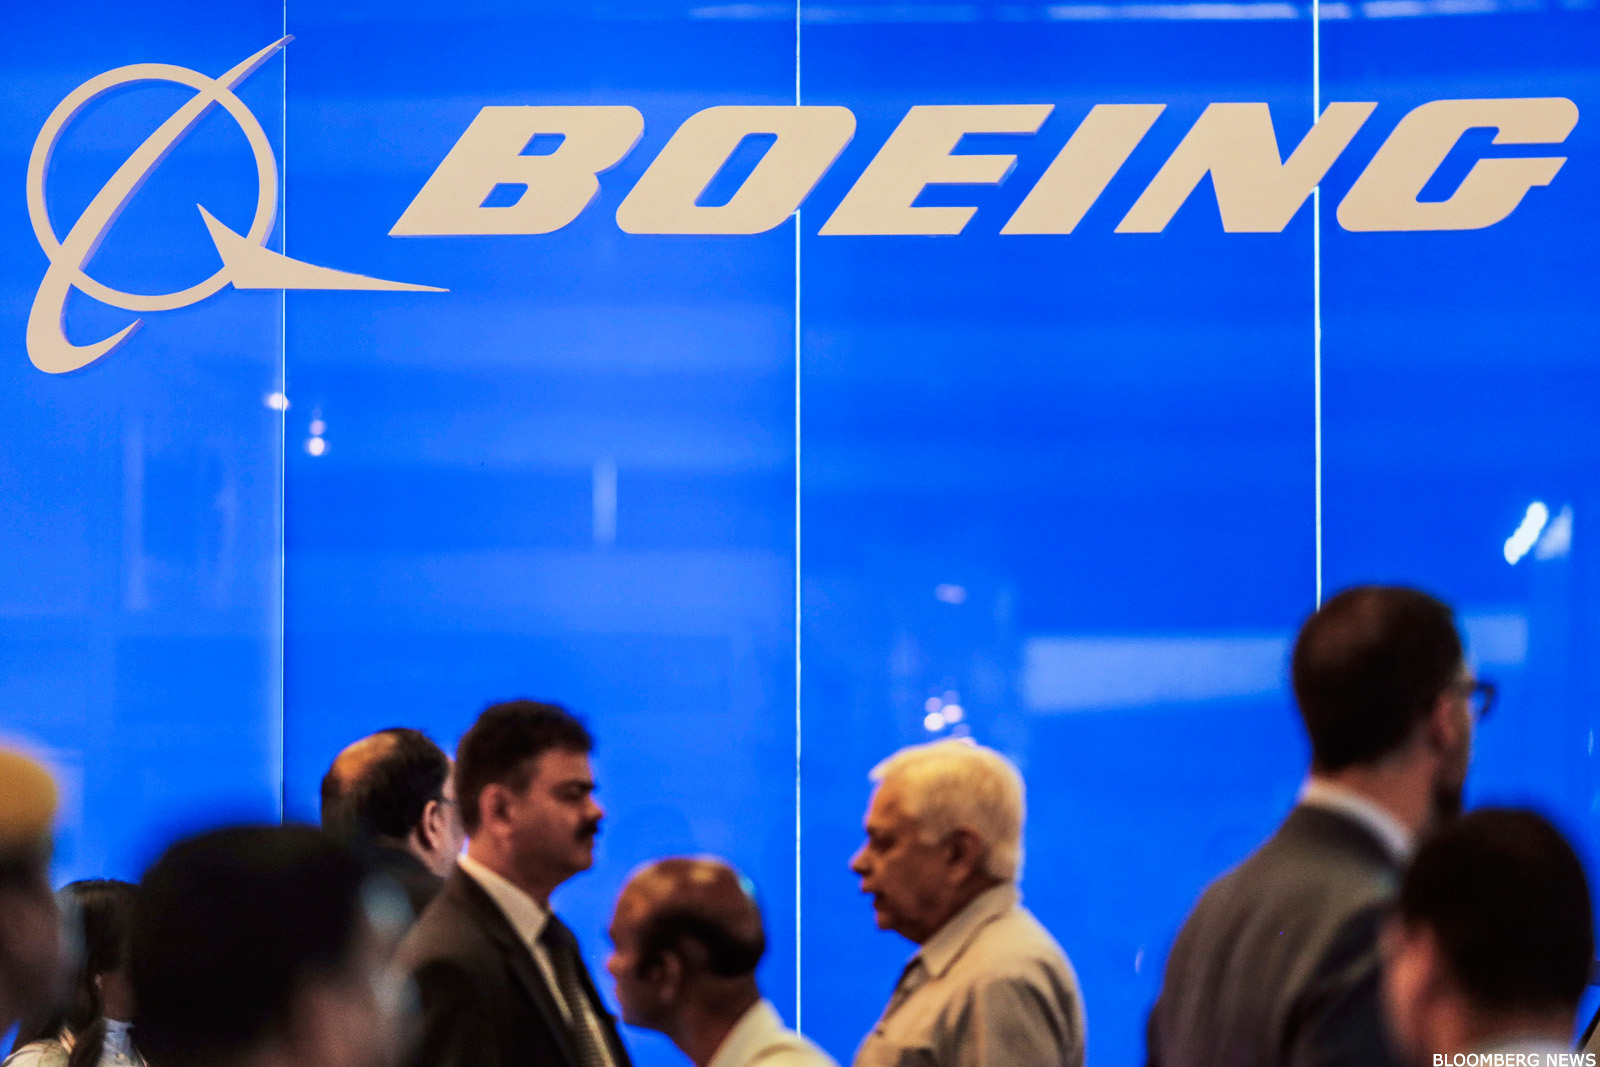 Boeings stock loses altitude ahead of trump visit on supplier boeings stock loses altitude ahead of trump visit on supplier difficulties thestreet buycottarizona Image collections